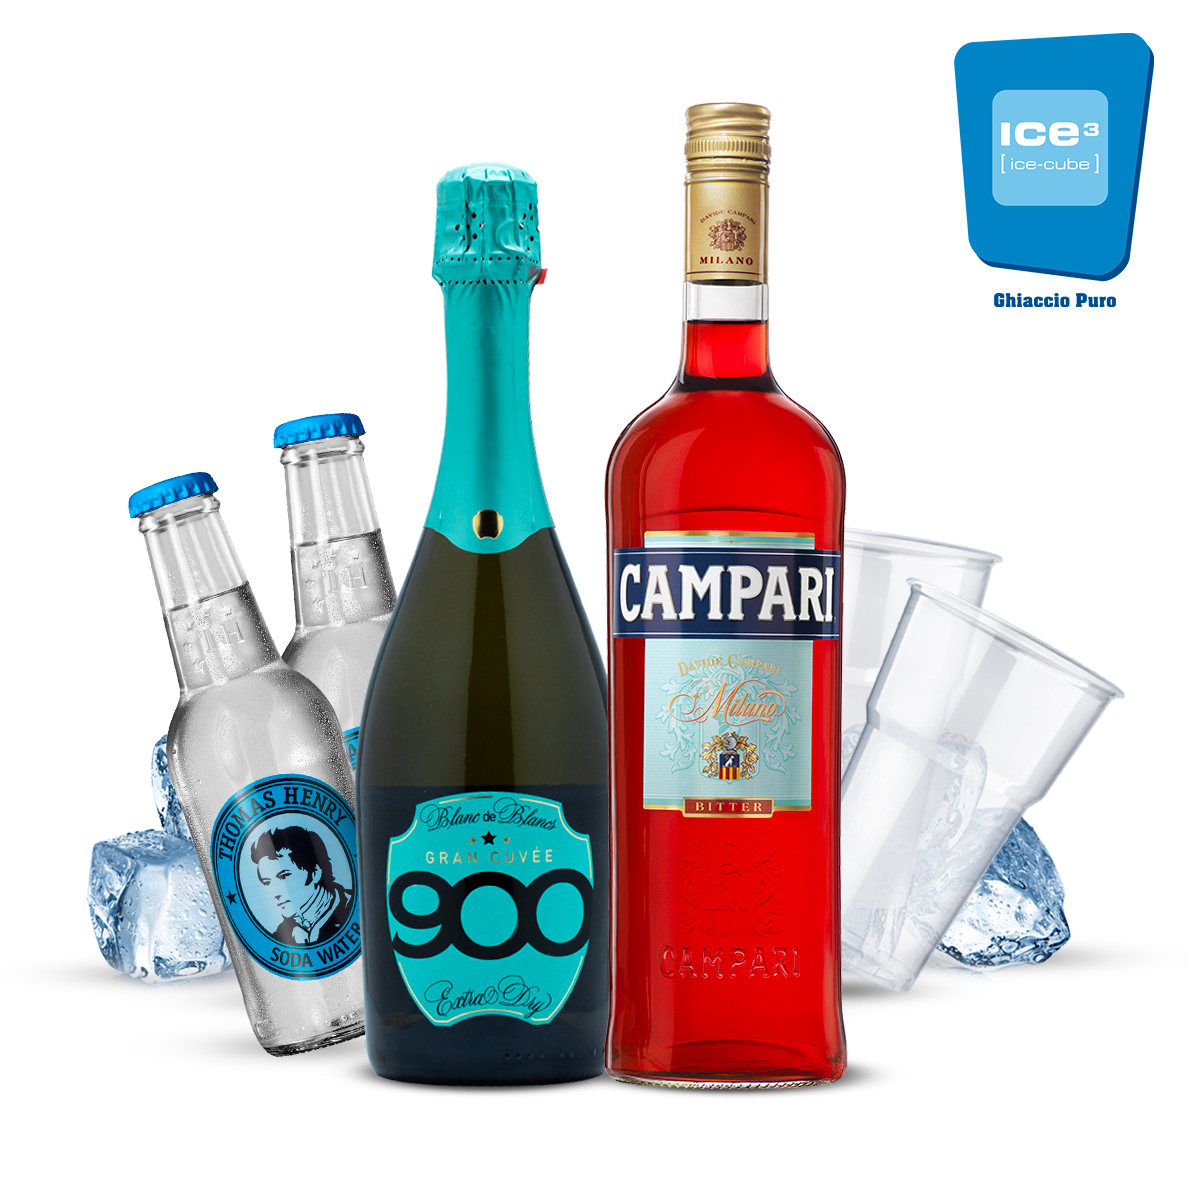 Campari - Spritz Cocktail Kit - per 10 persone